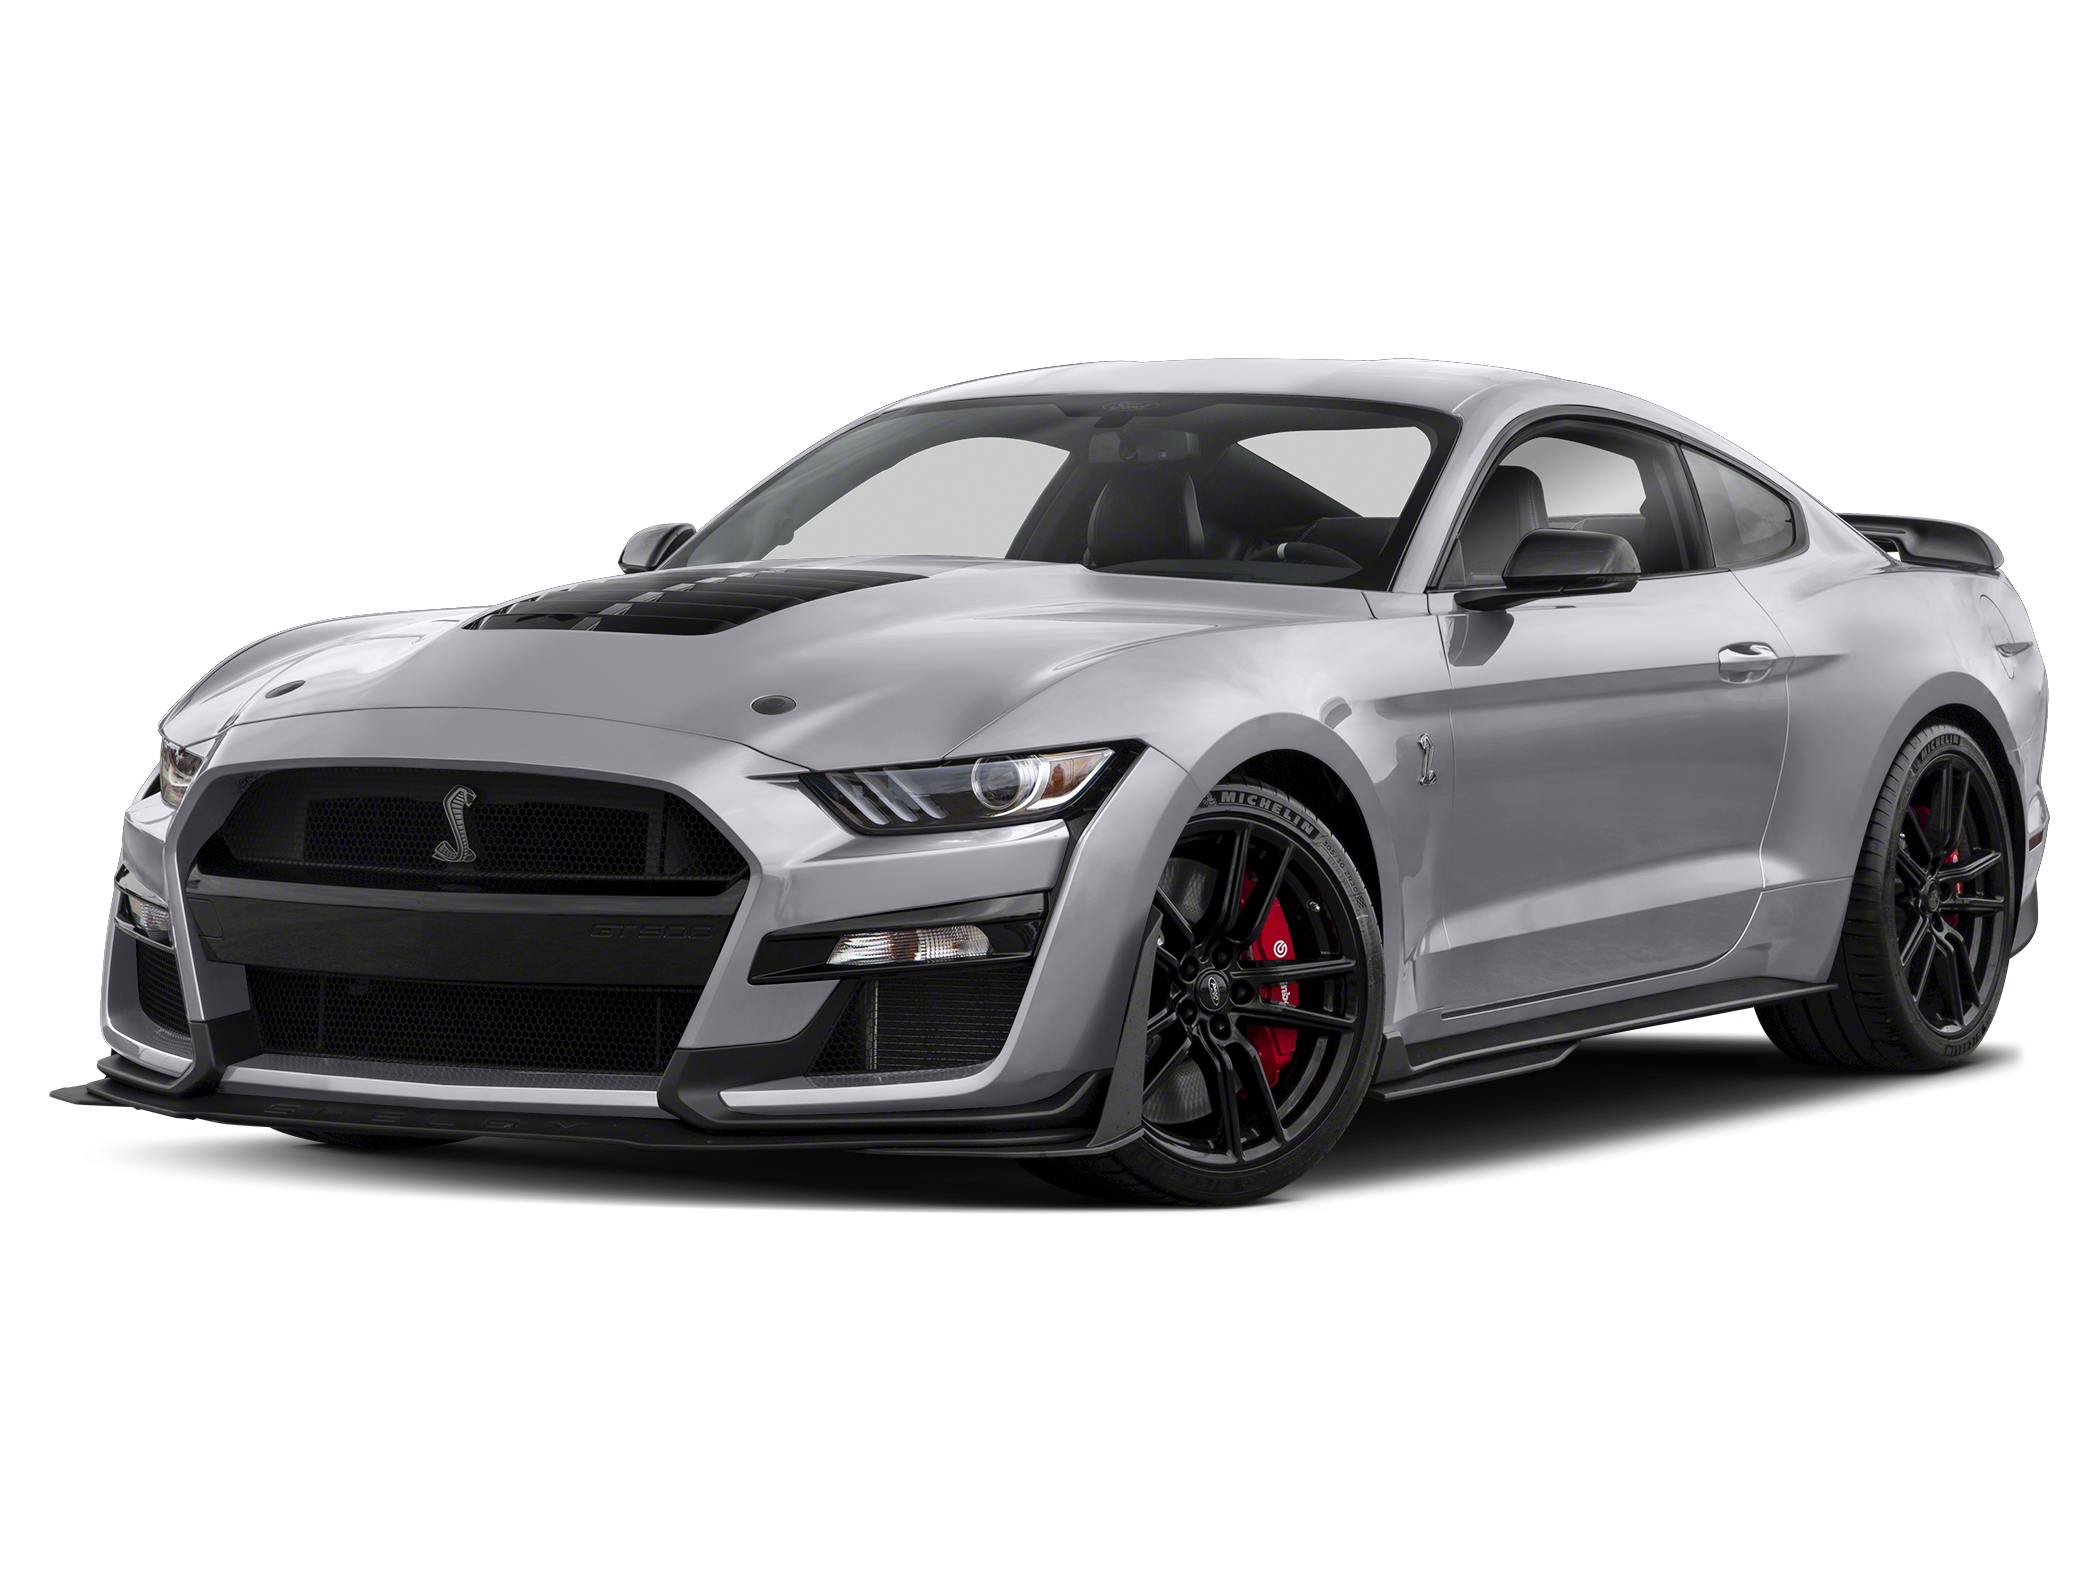 2020 Ford Mustang Shelby GT500 : Price, Specs & Review ...